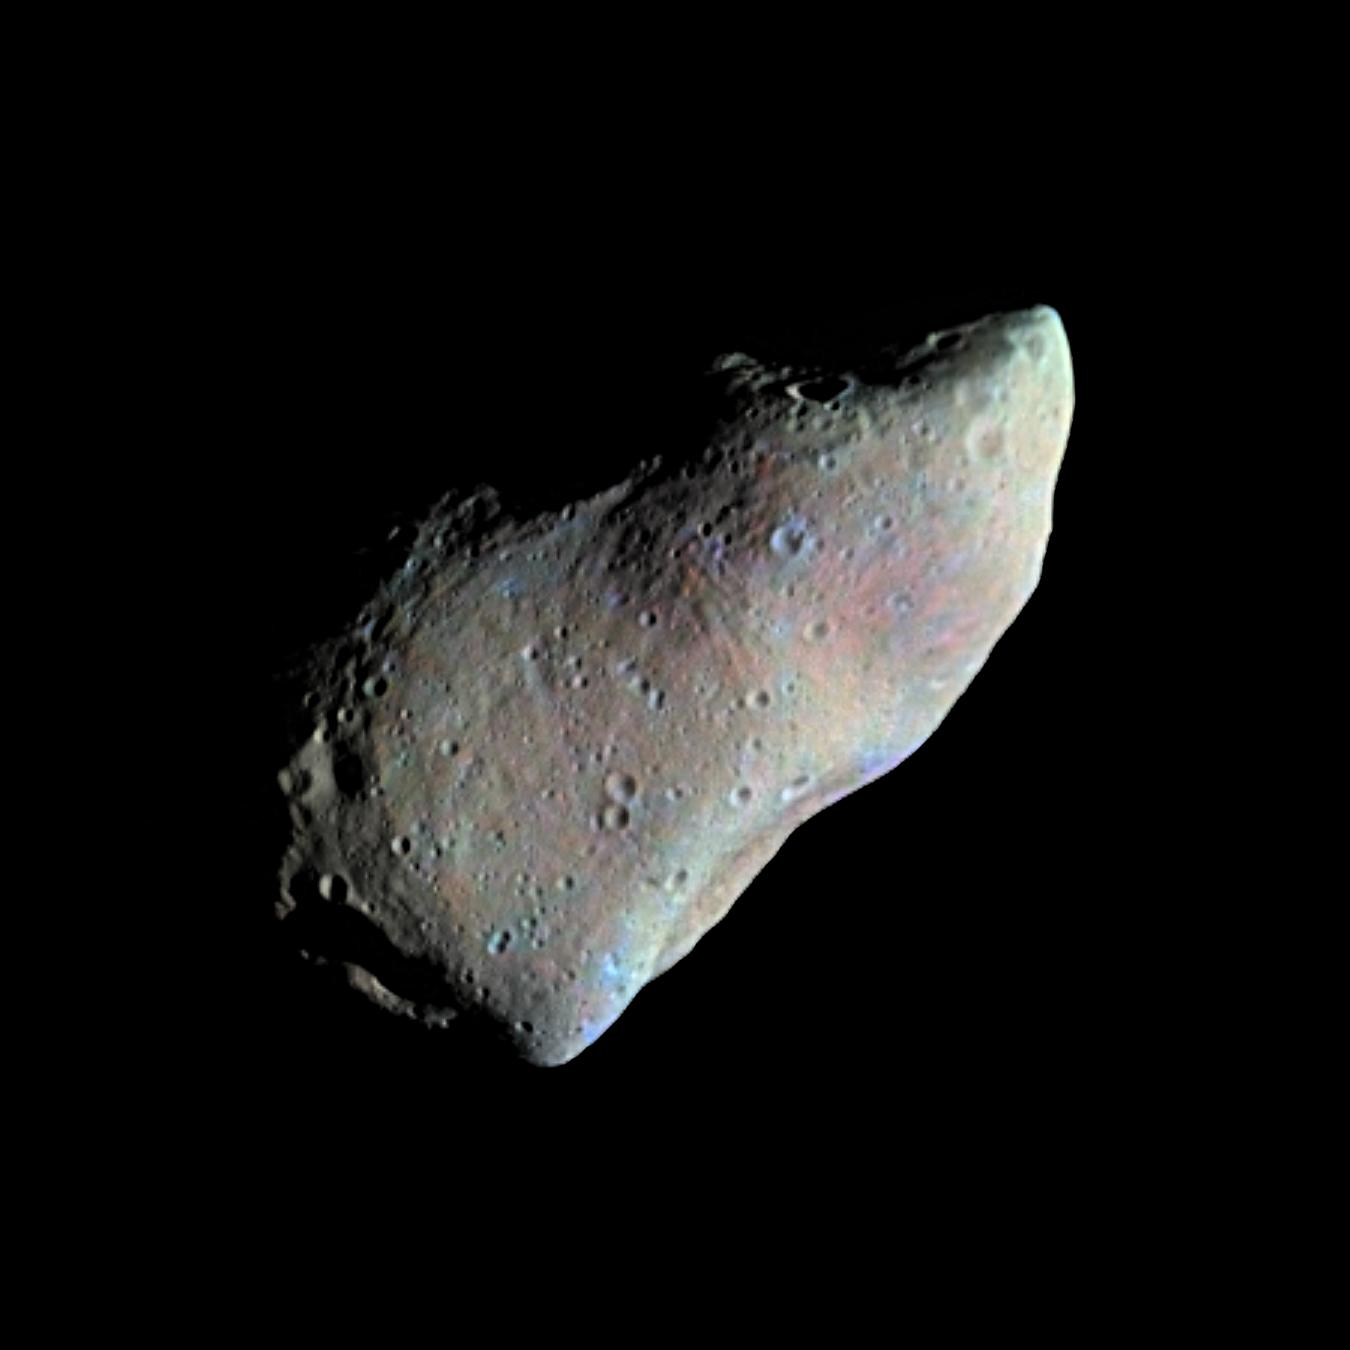 Picture of asteroid Gaspra as a mosaic of two images